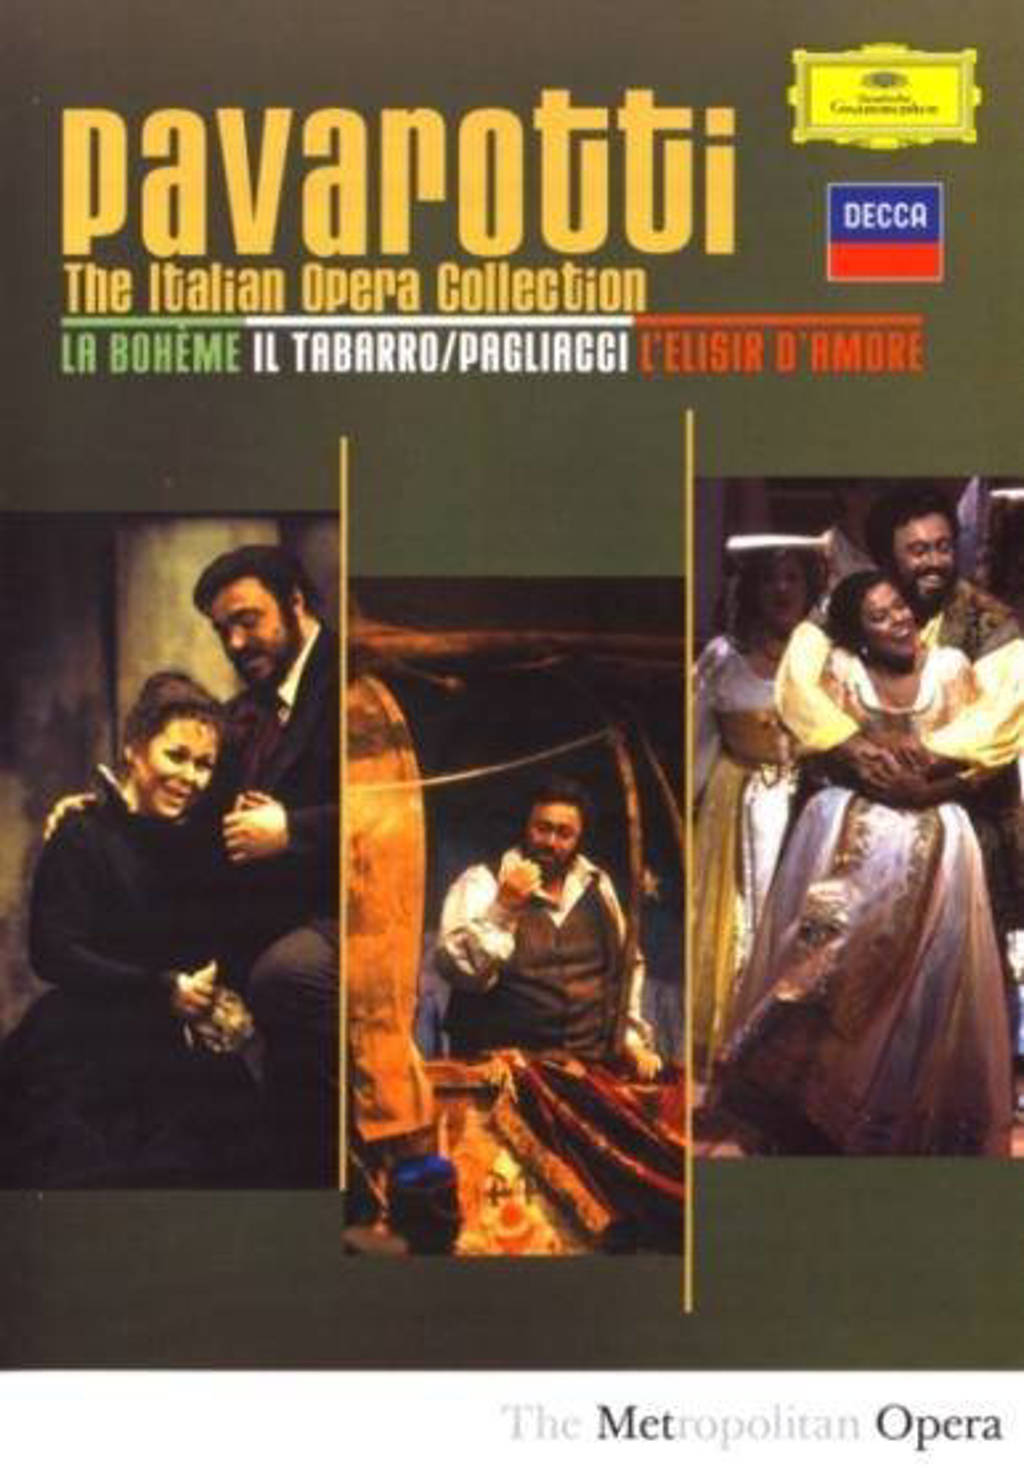 Luciano Pavarotti - The Italian opera collection (DVD)